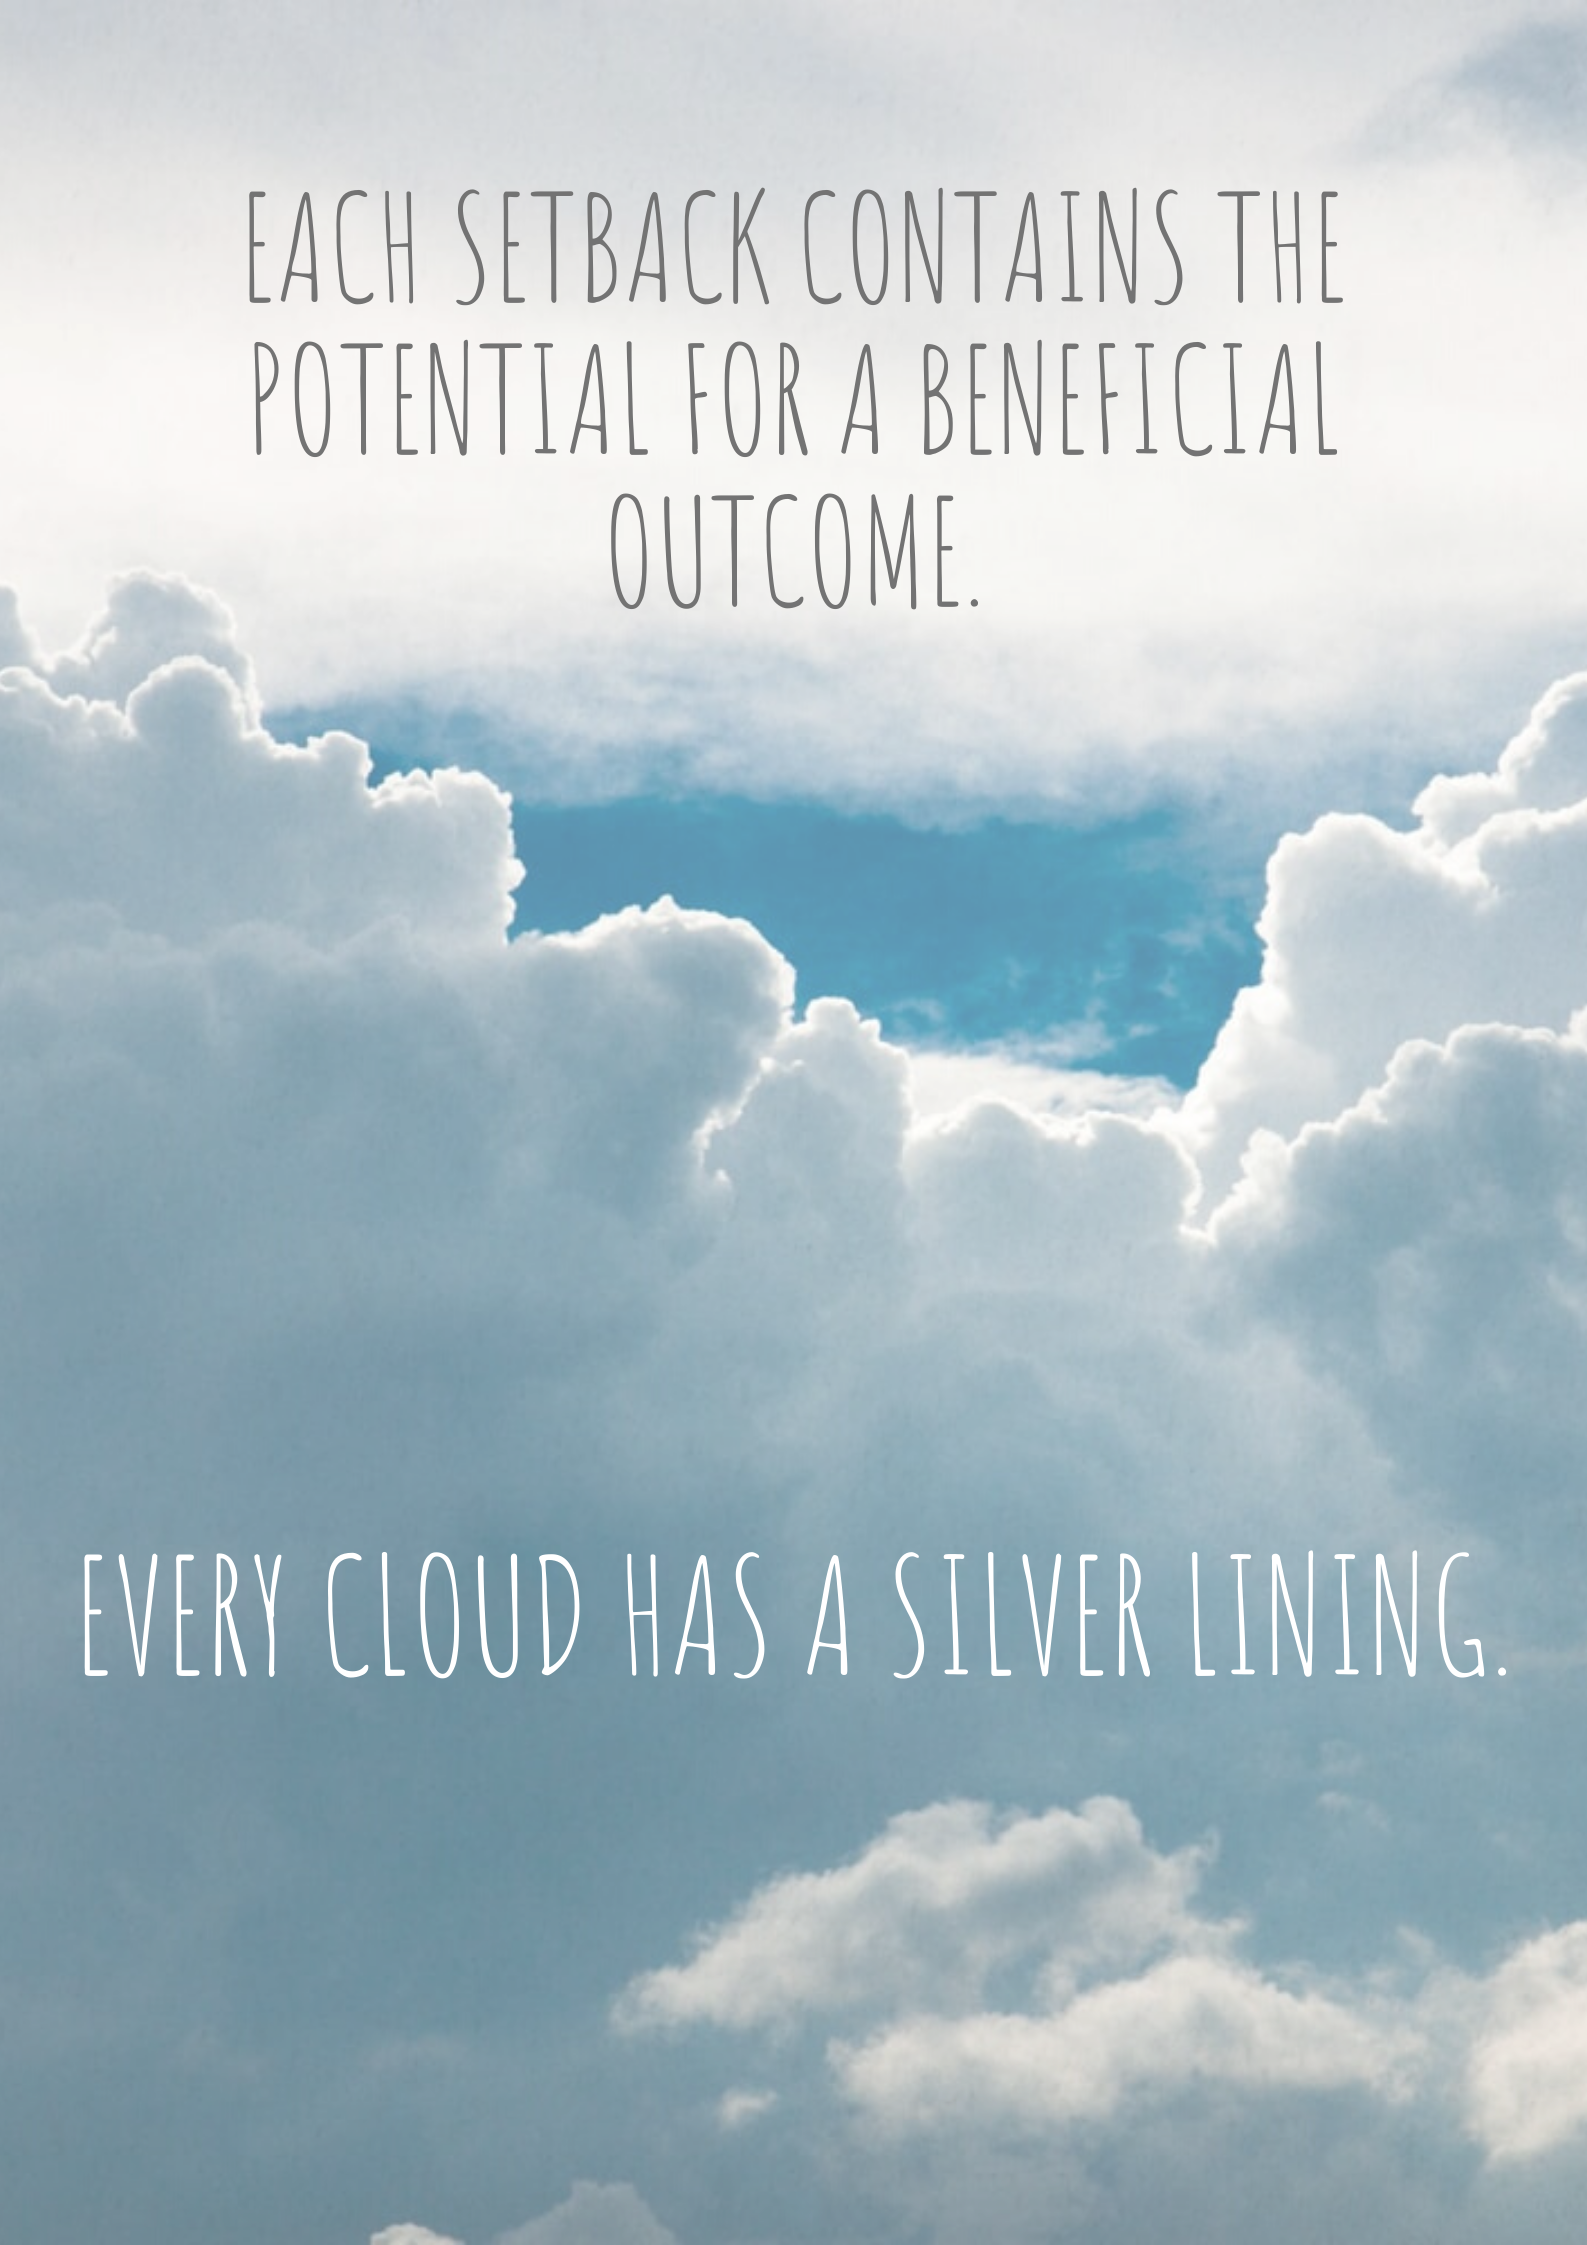 Silver lining graphic